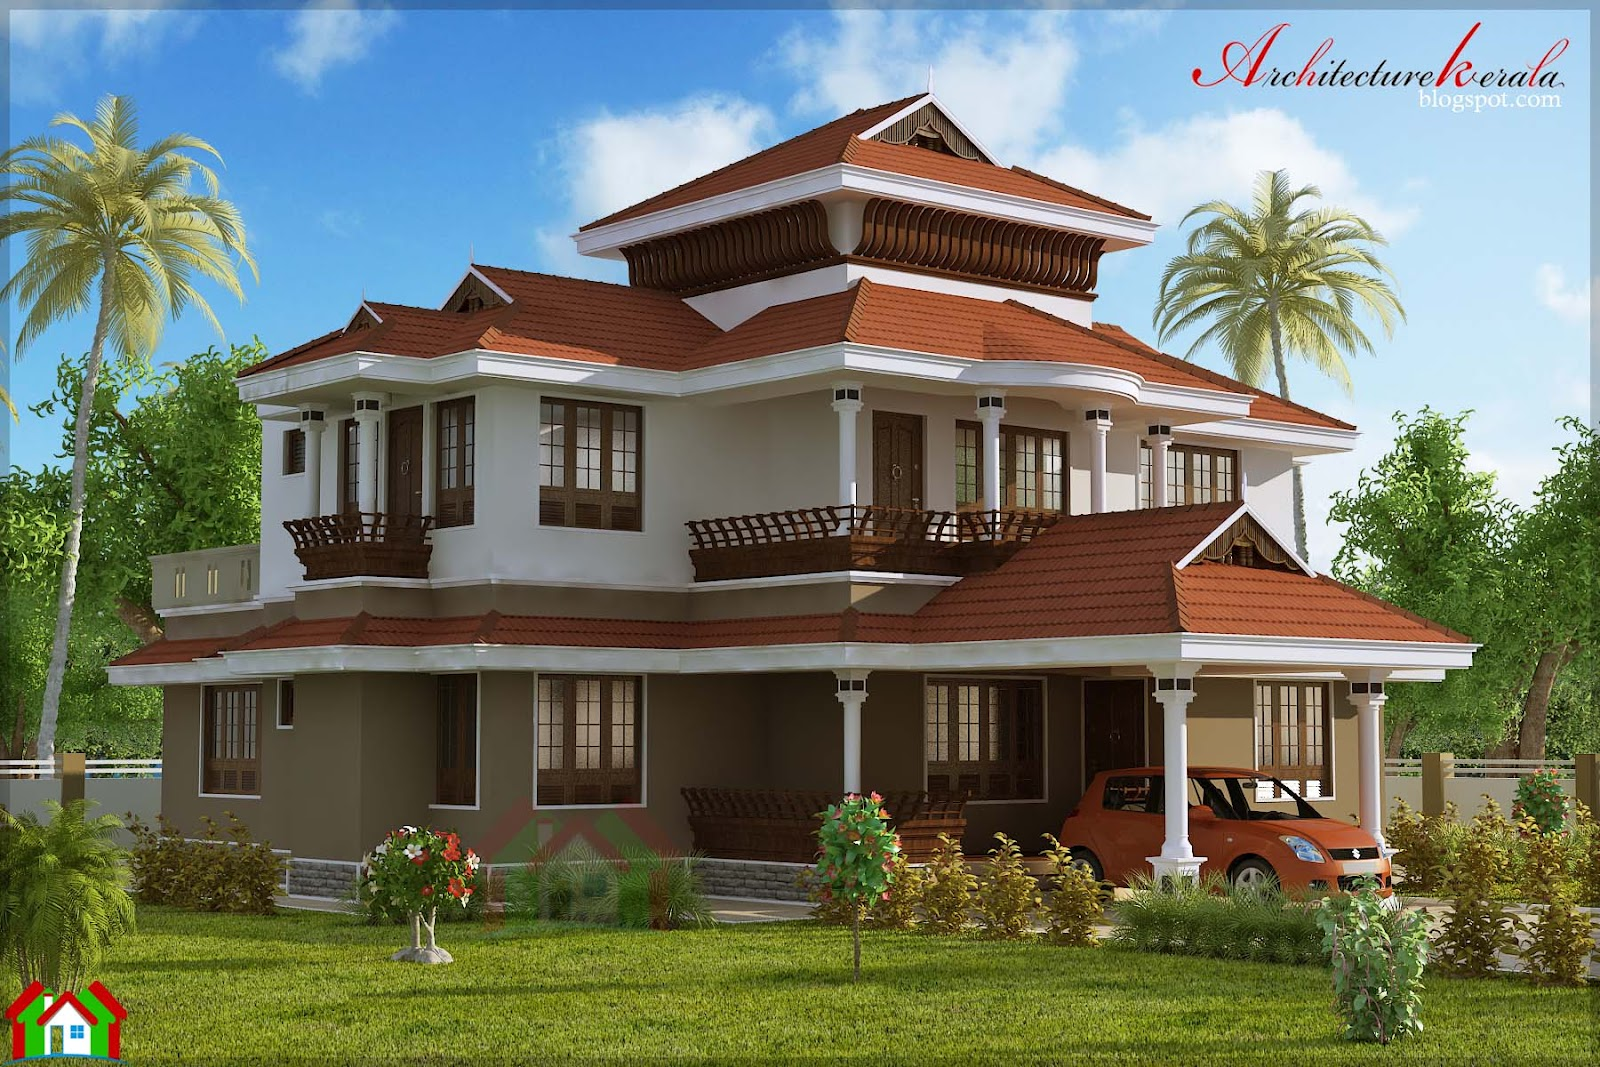 4 bed room traditional style house architecture kerala for Traditional house architecture